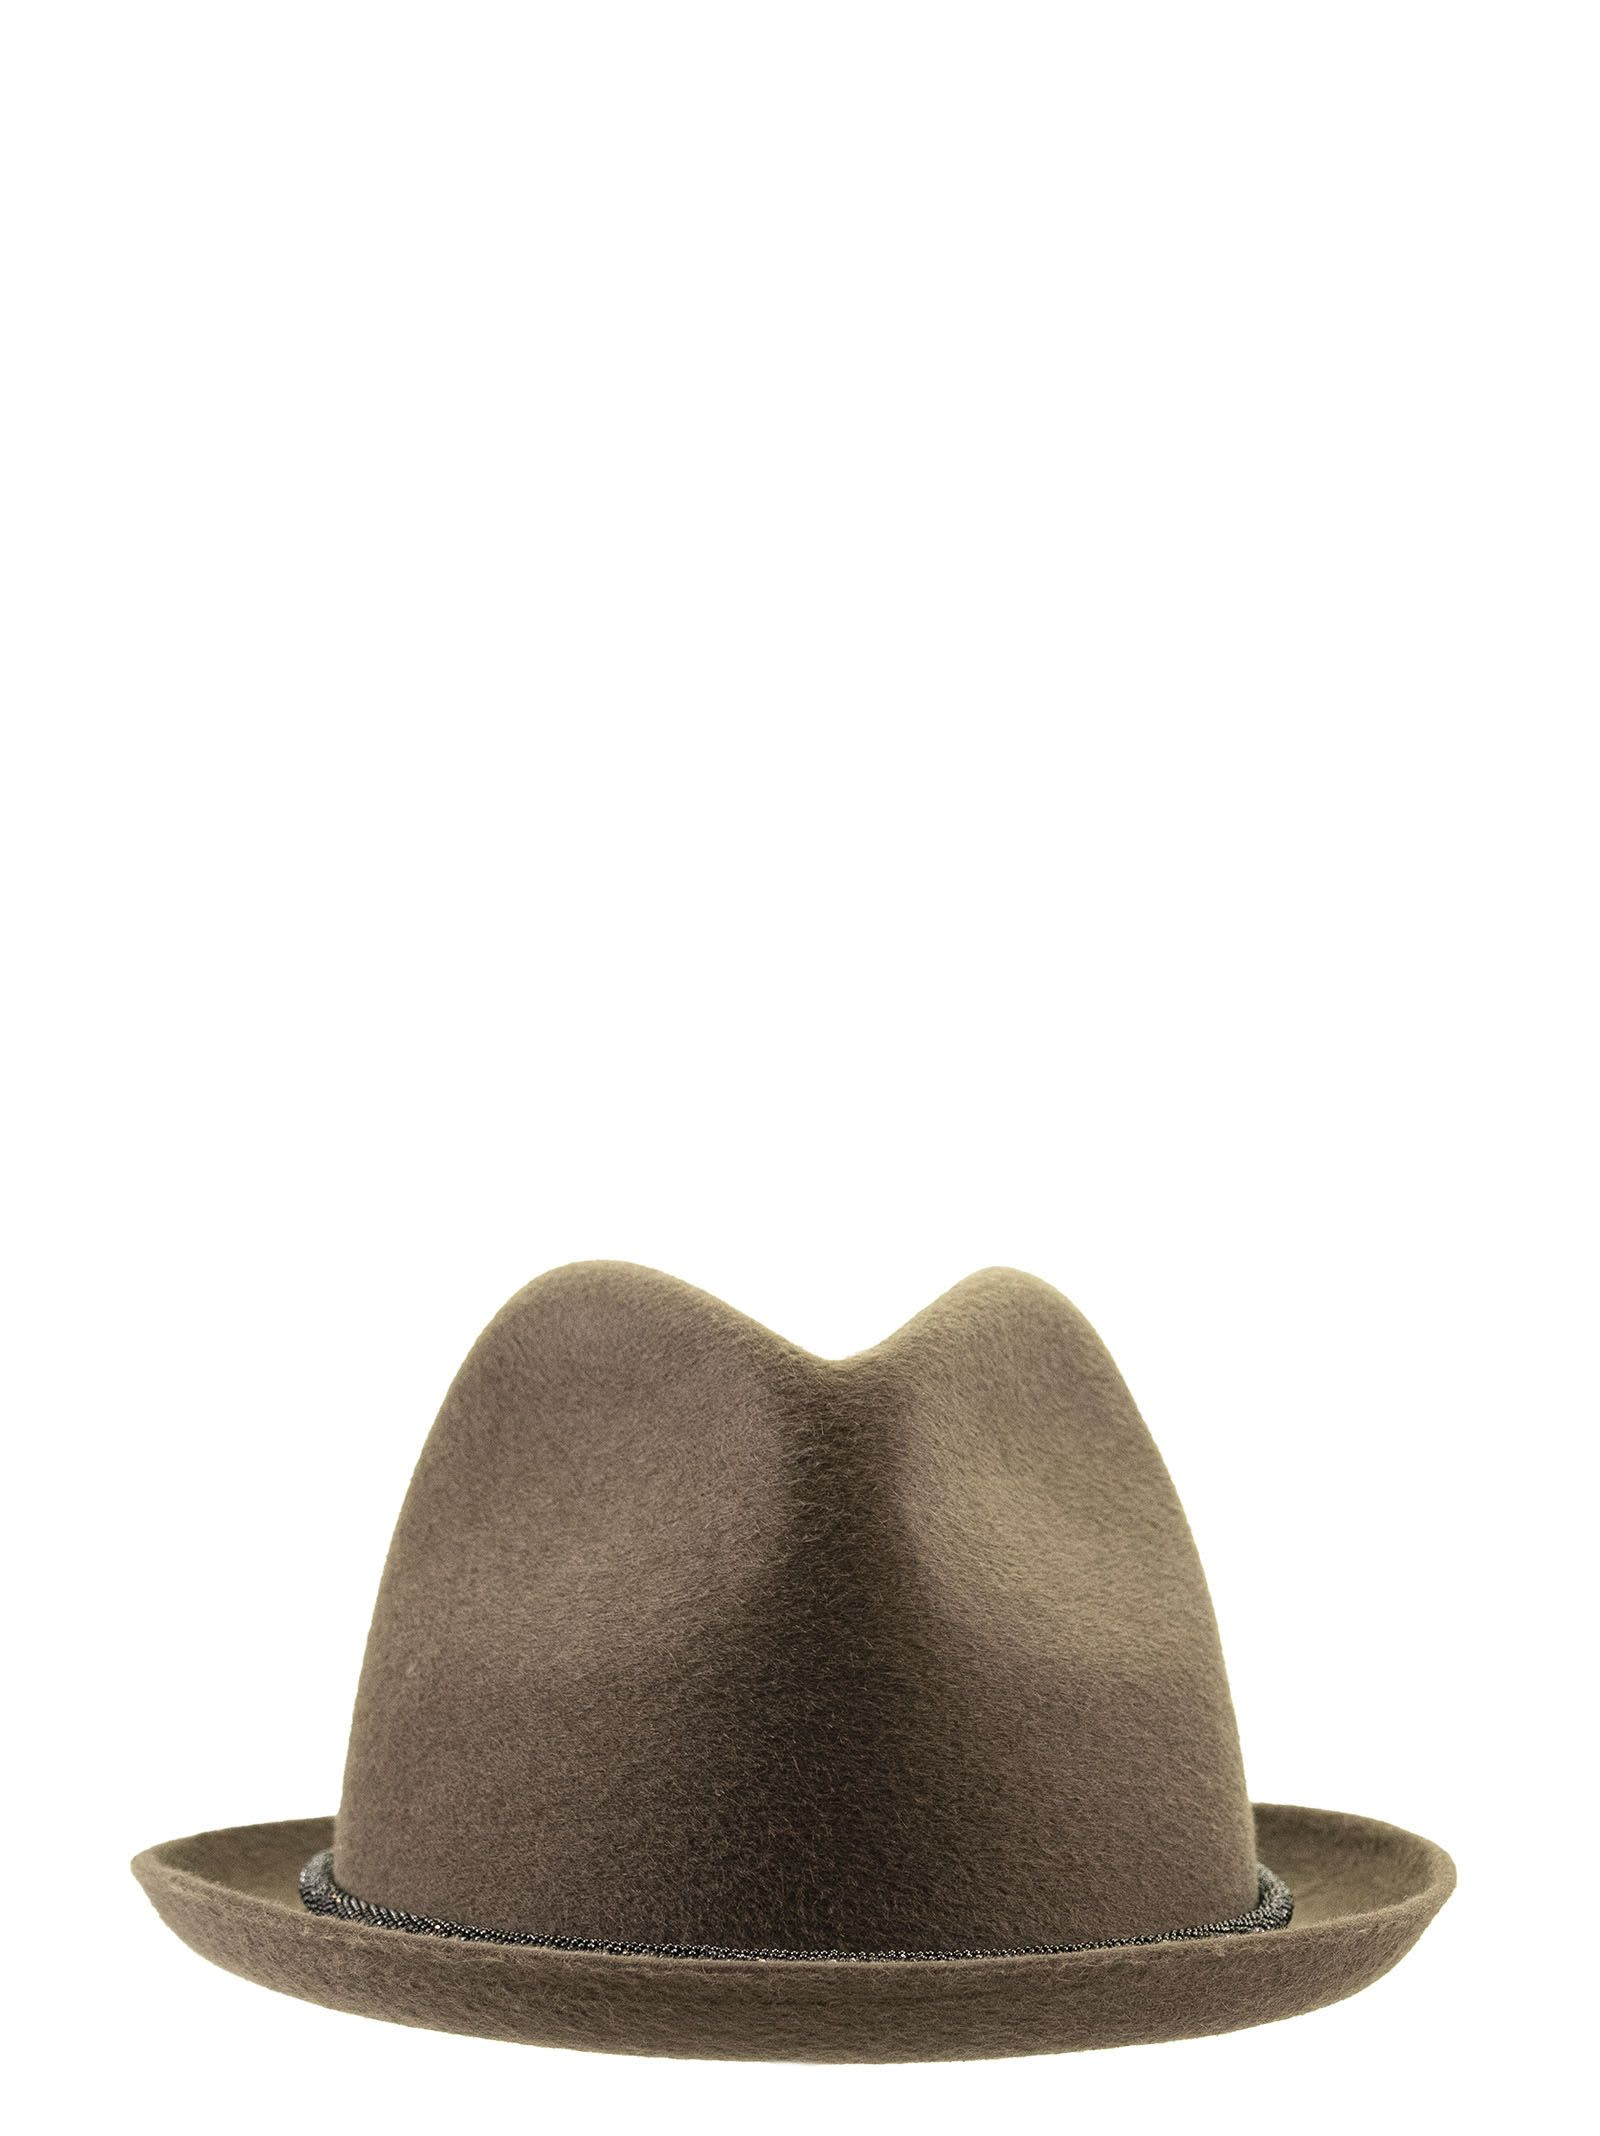 Brunello Cucinelli HAT FEDORA IN LAPIN WITH PRECIOUS BAND